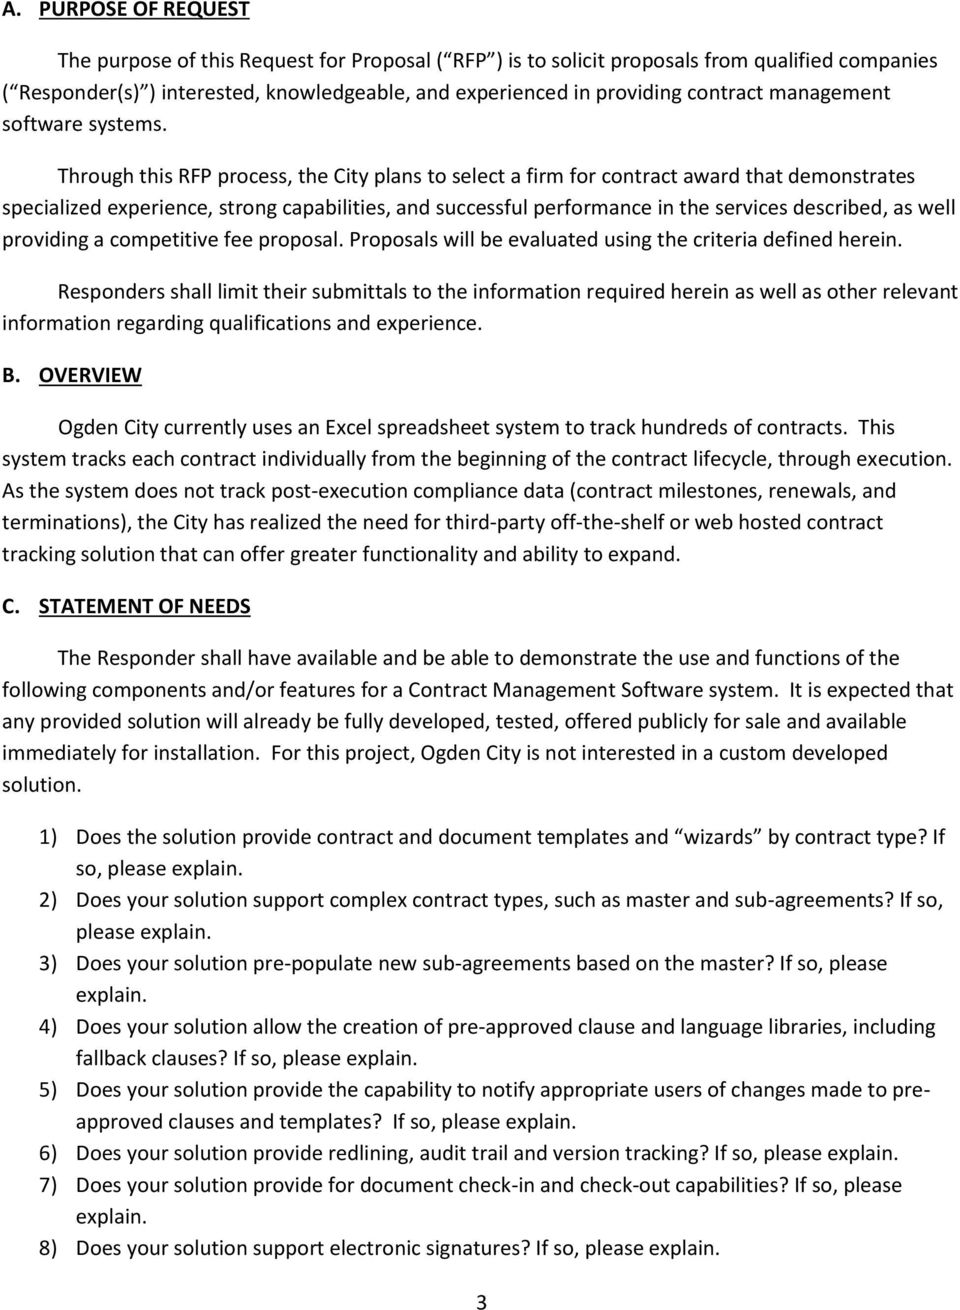 Request for Proposal  Contract Management Software - PDF